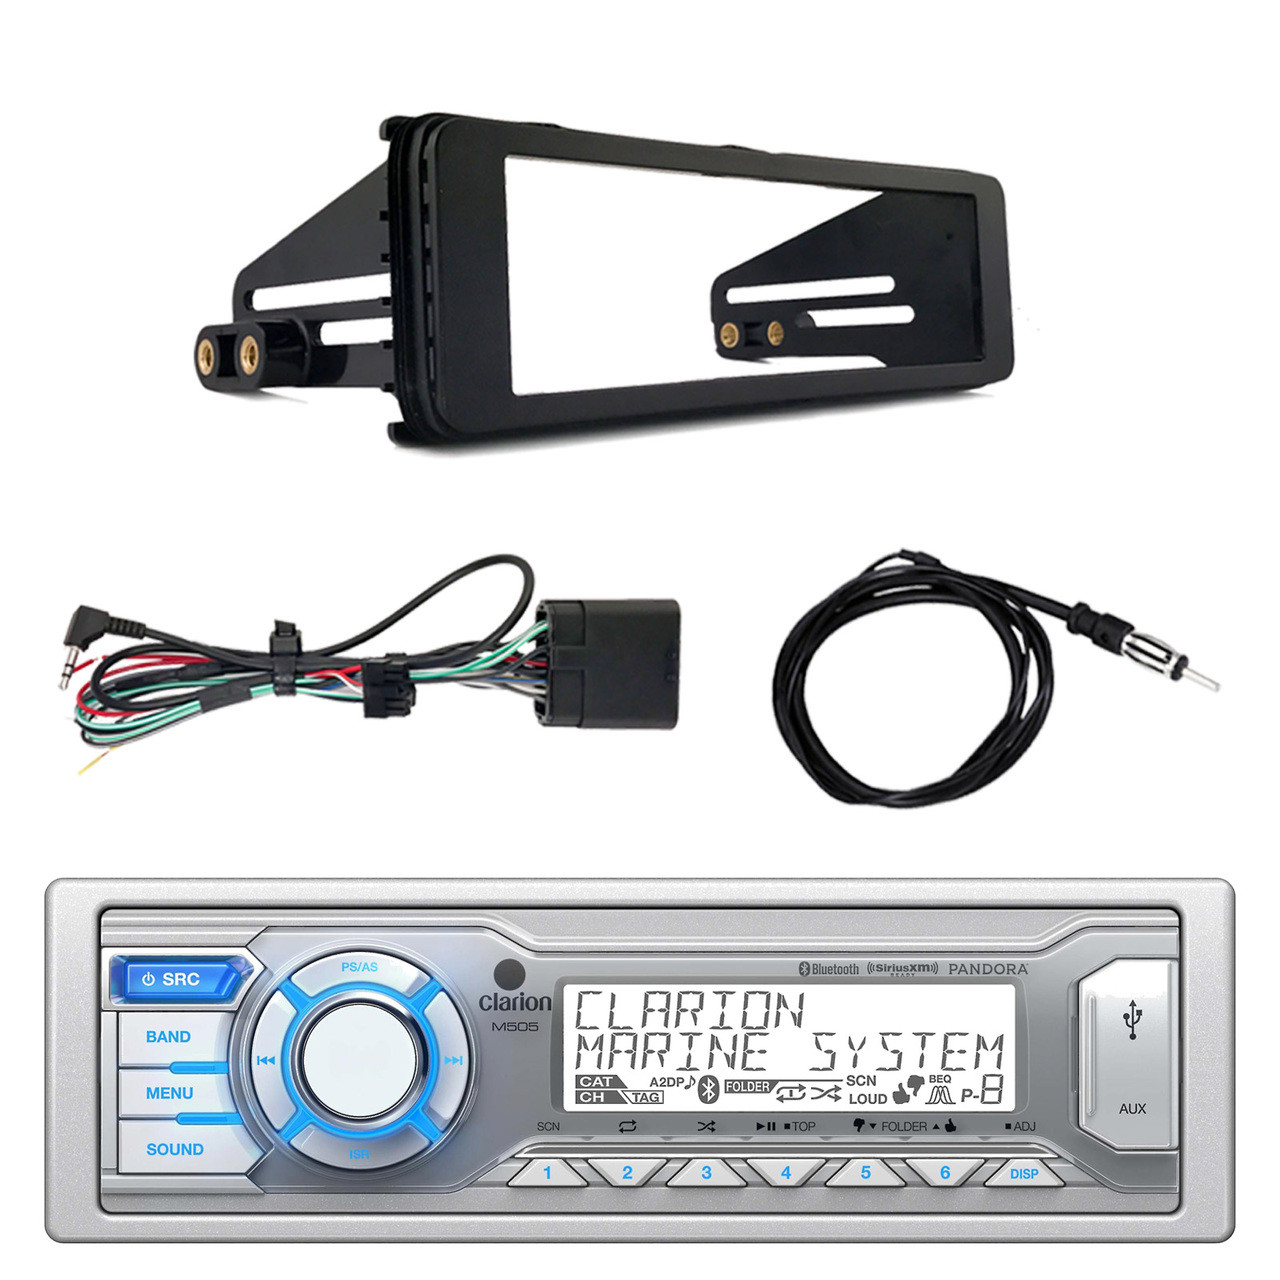 small resolution of clarion m505 marine bluetooth radio siriusxm tuner harley dash kit wire harness for clarion m505